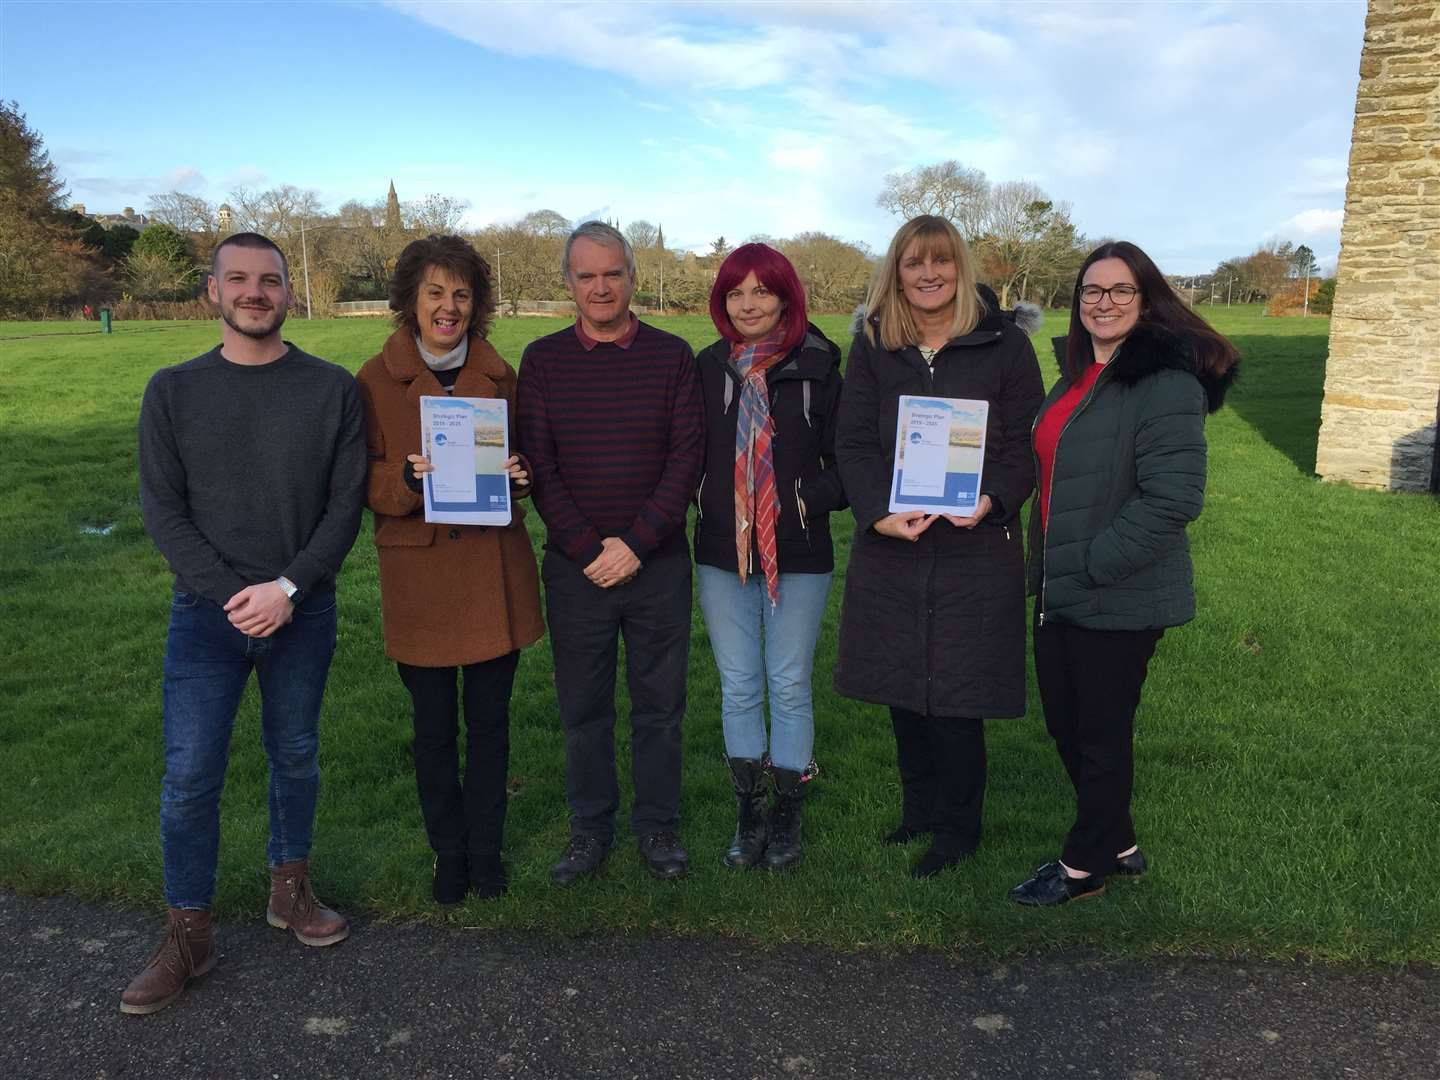 Thurso Community Development Trust board members (from left) with copies of the plan – Magnus Davidson, Gill Arrowsmith, Ron Gunn, Andrea Wotherspoon, Carol Paterson and Marion O'Brien.